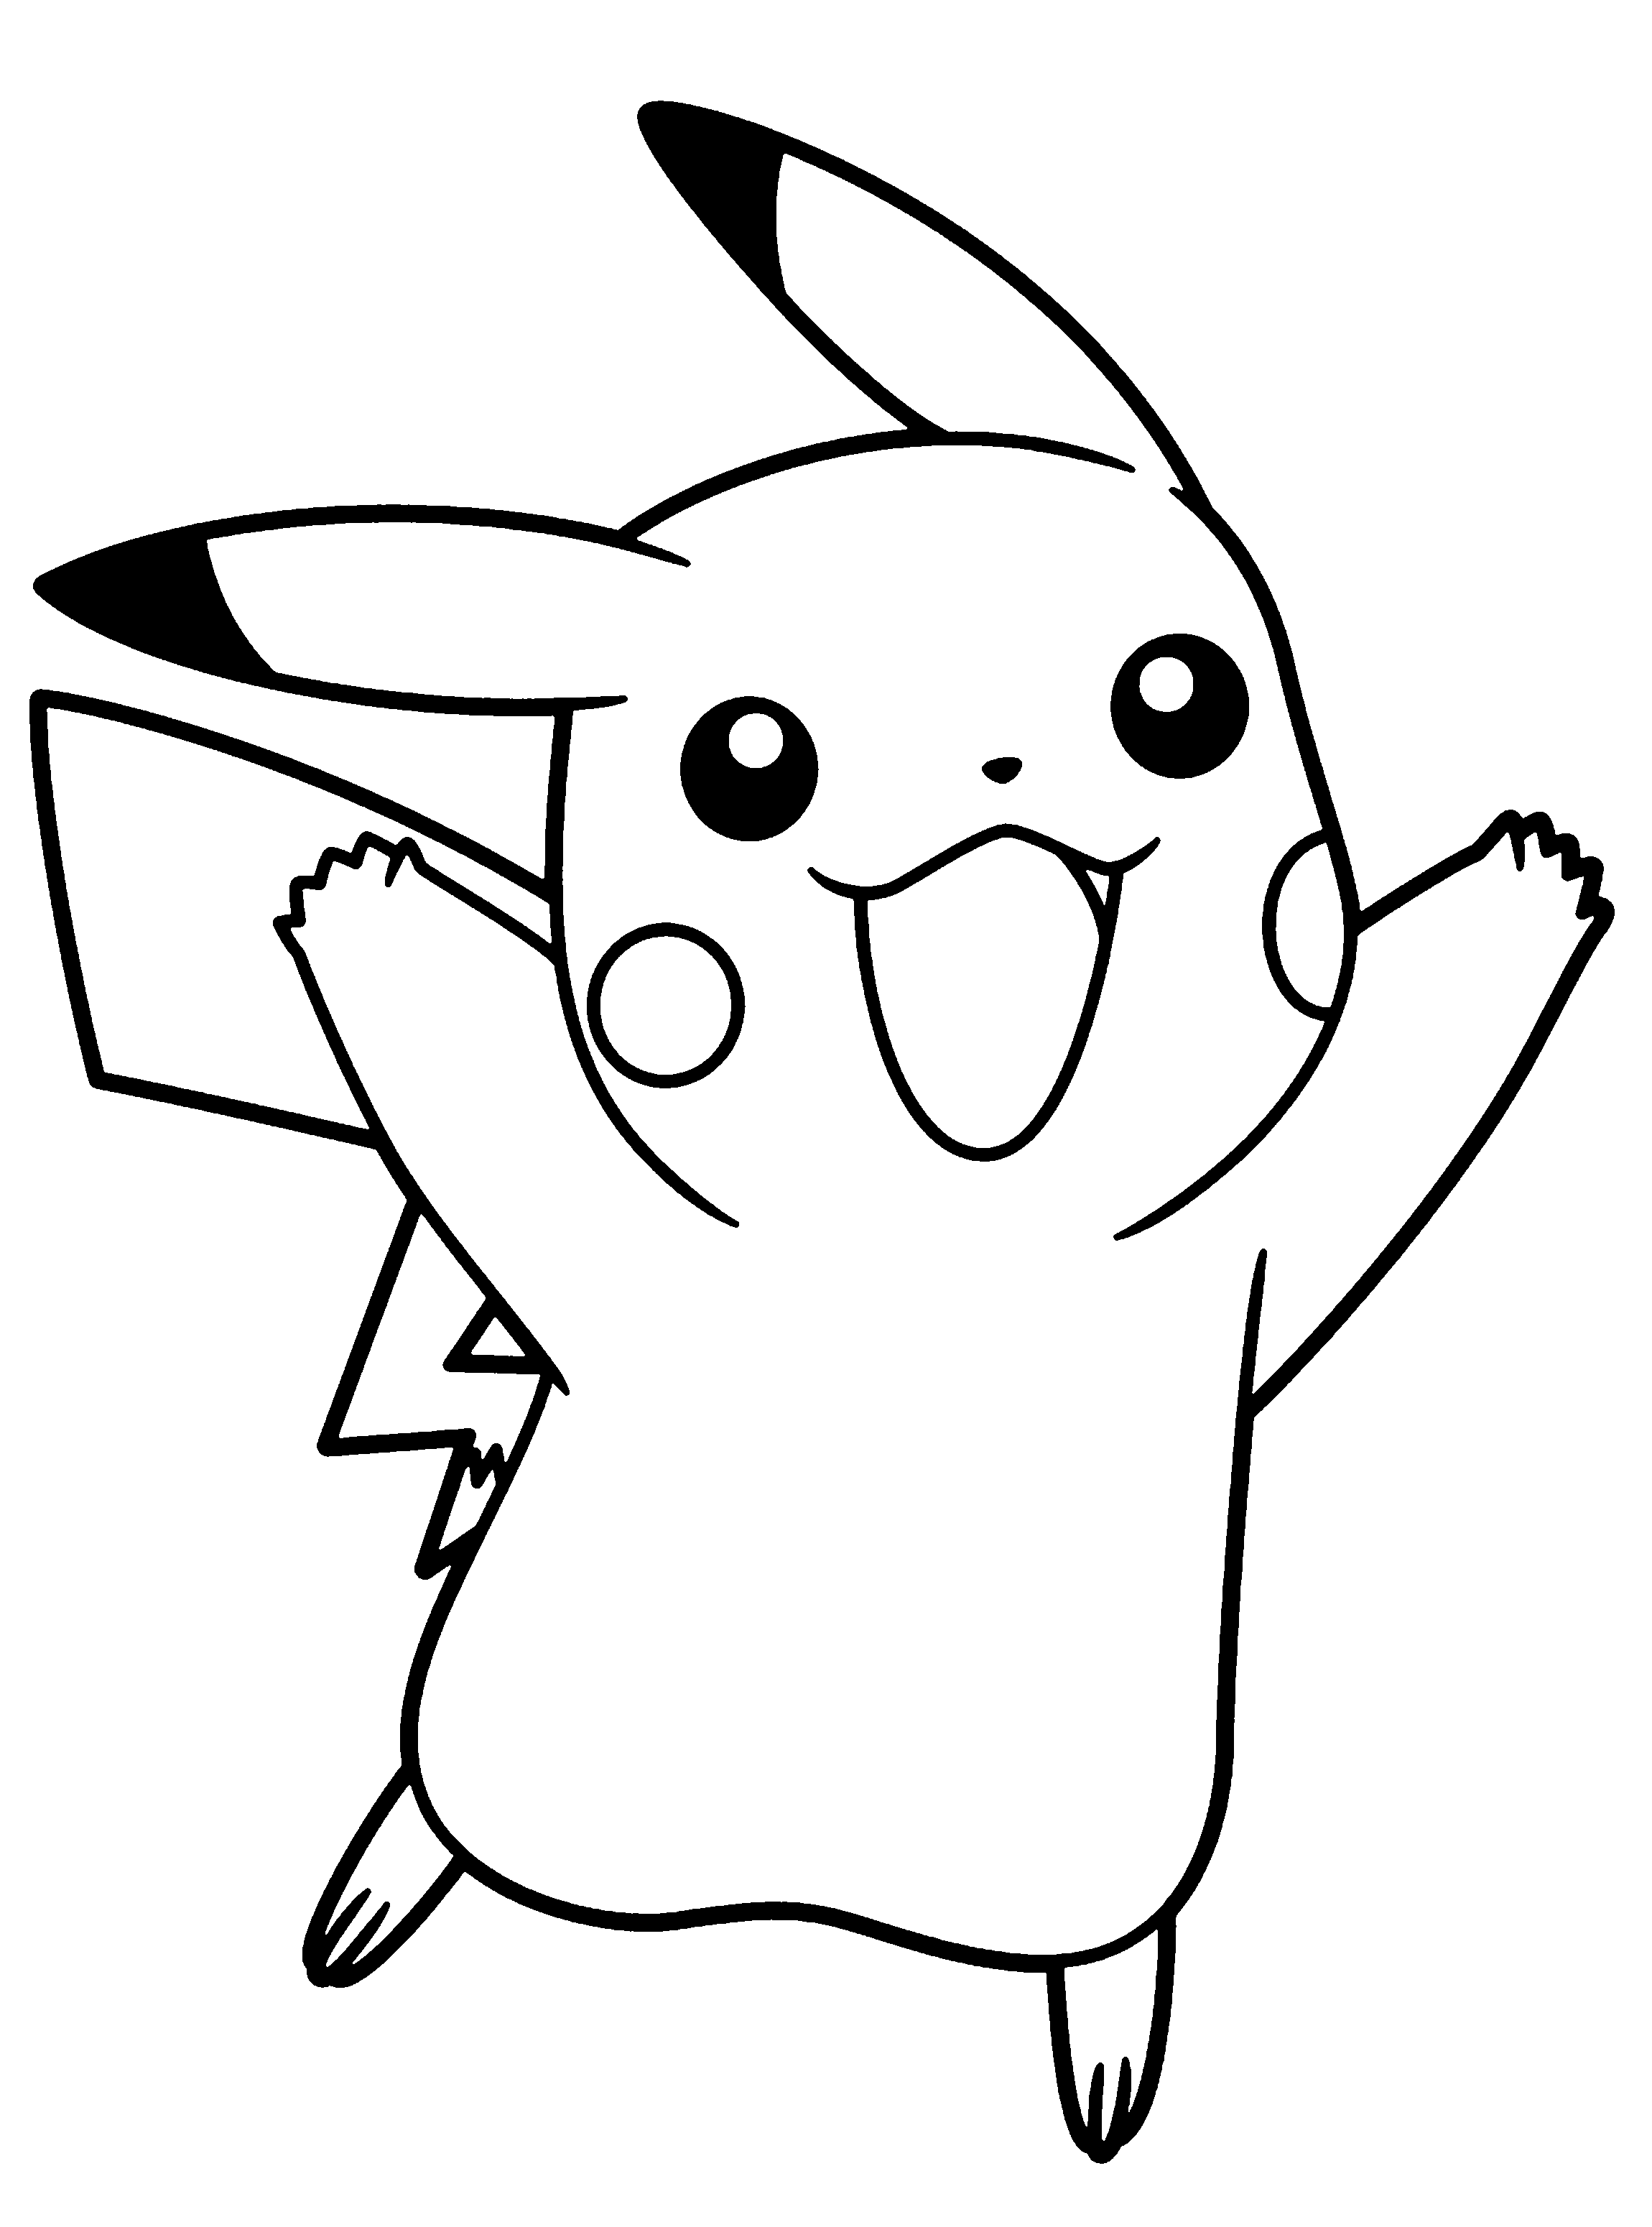 pikachu images for coloring pikachu dancing coloring page free printable coloring images pikachu for coloring